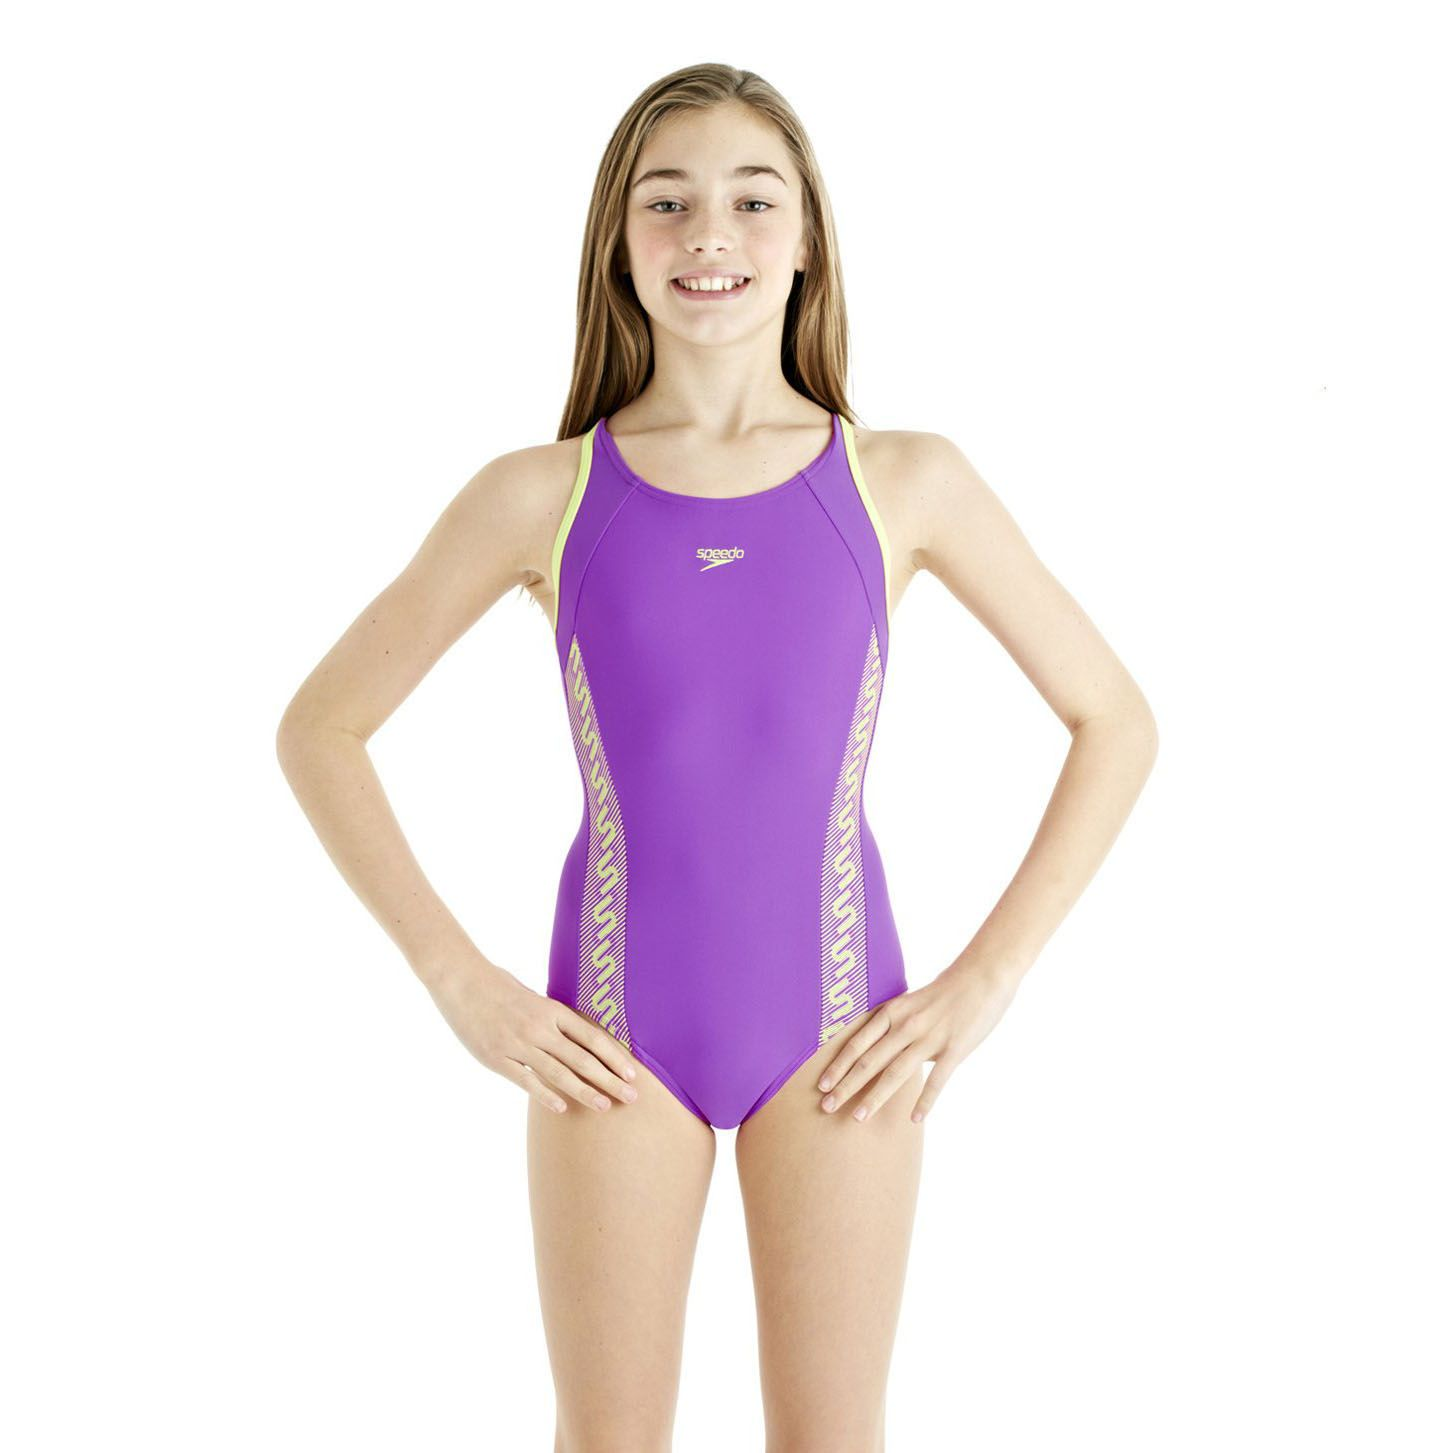 speedo monogram muscleback girls swimsuit ss13